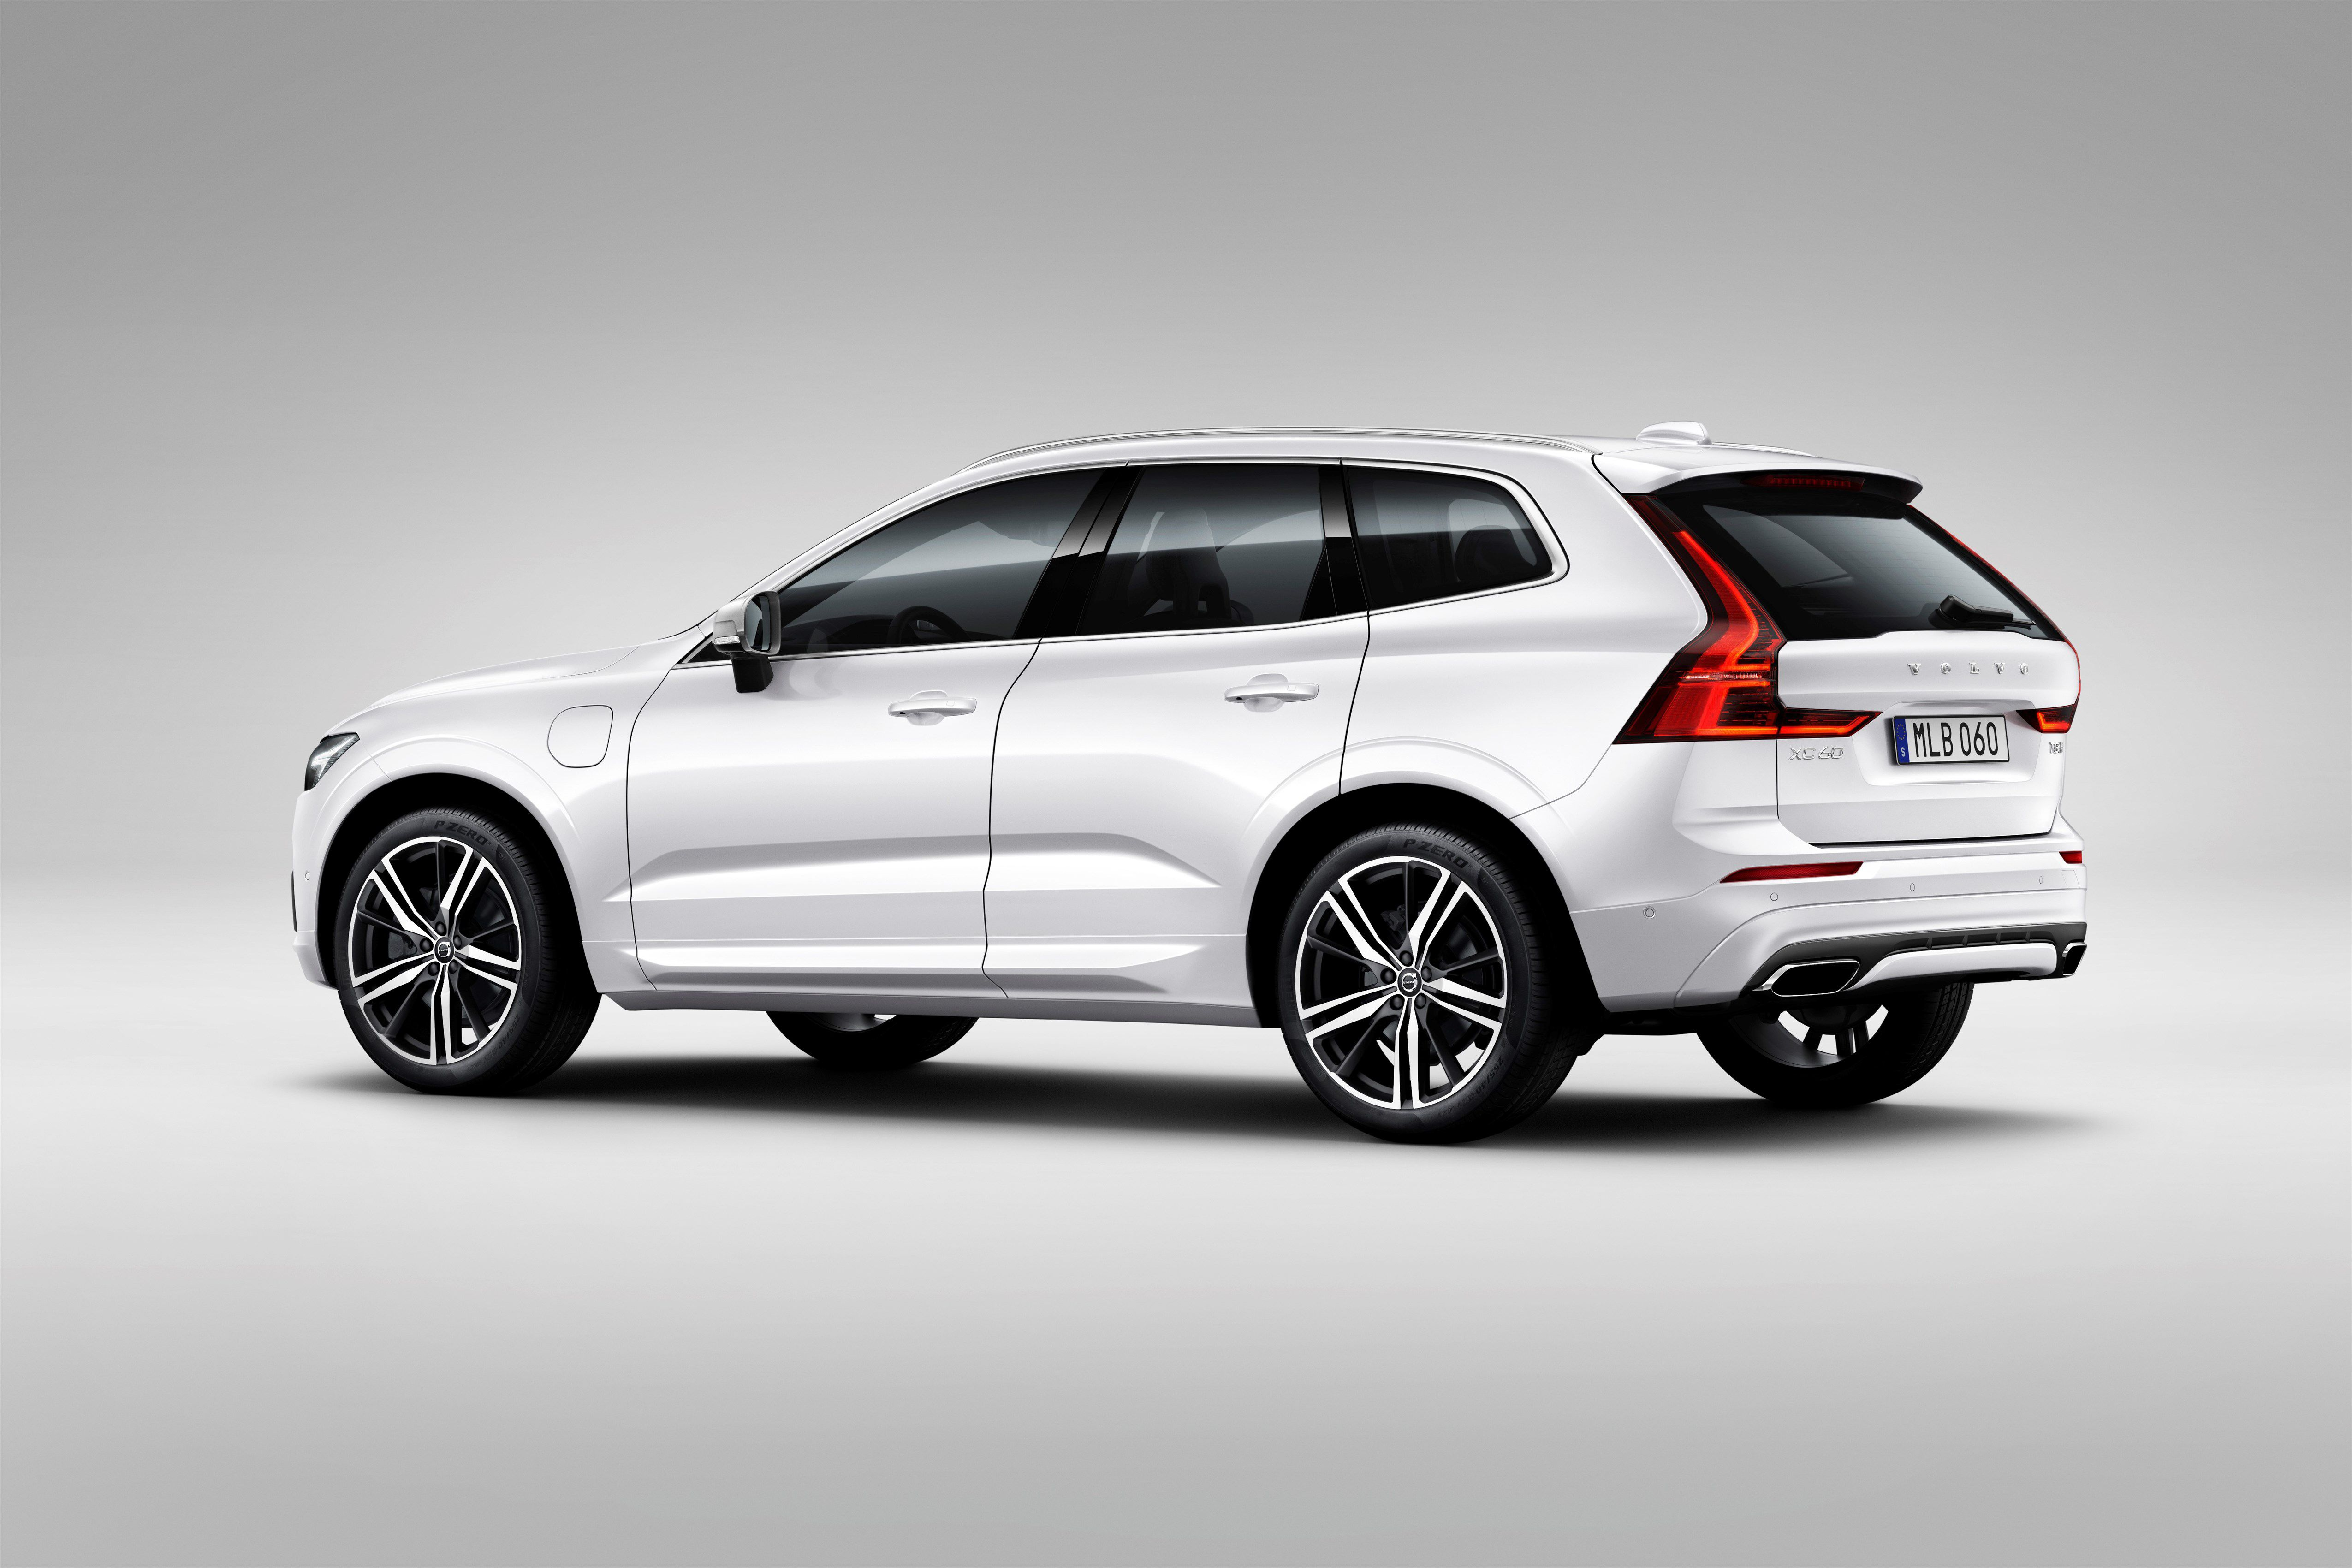 htm exterior price lease offers image volvo main new pa deals berwyn keystone